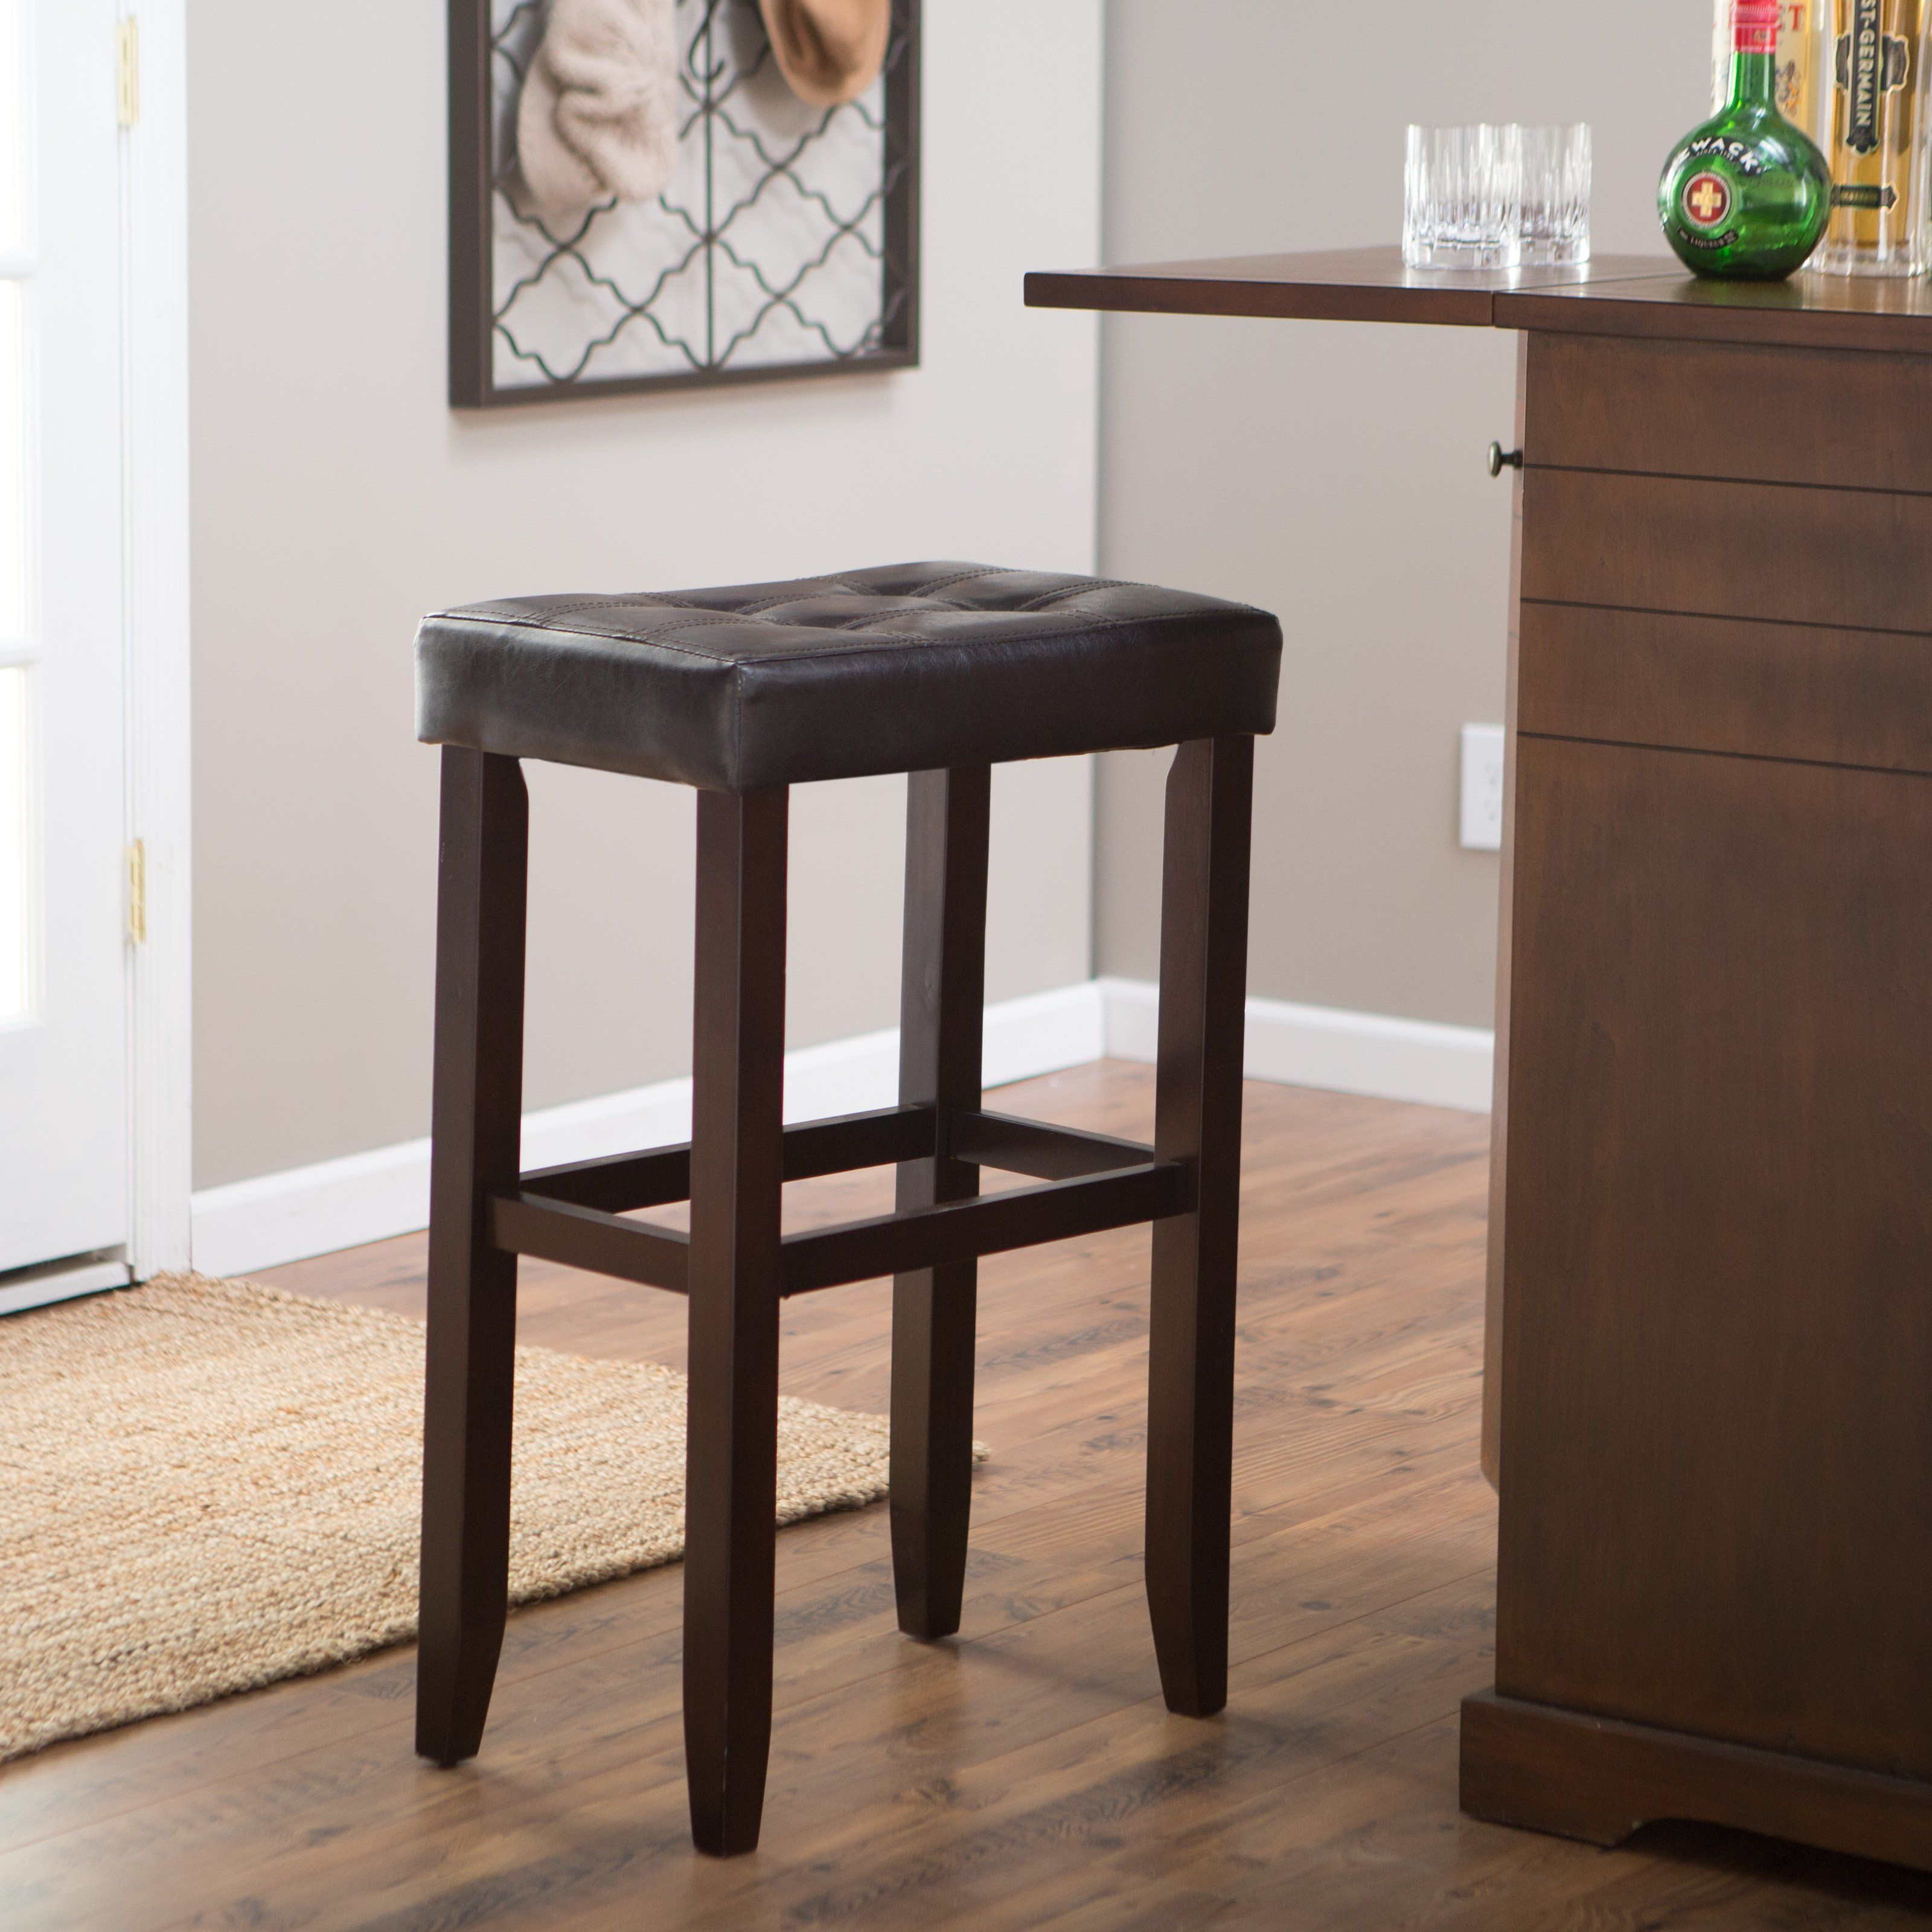 Palazzo 32 Inch Saddle Bar Stool - Brown - Simple and space-saving the & Palazzo 32 Inch Saddle Bar Stool - Brown - Simple and space-saving ... islam-shia.org